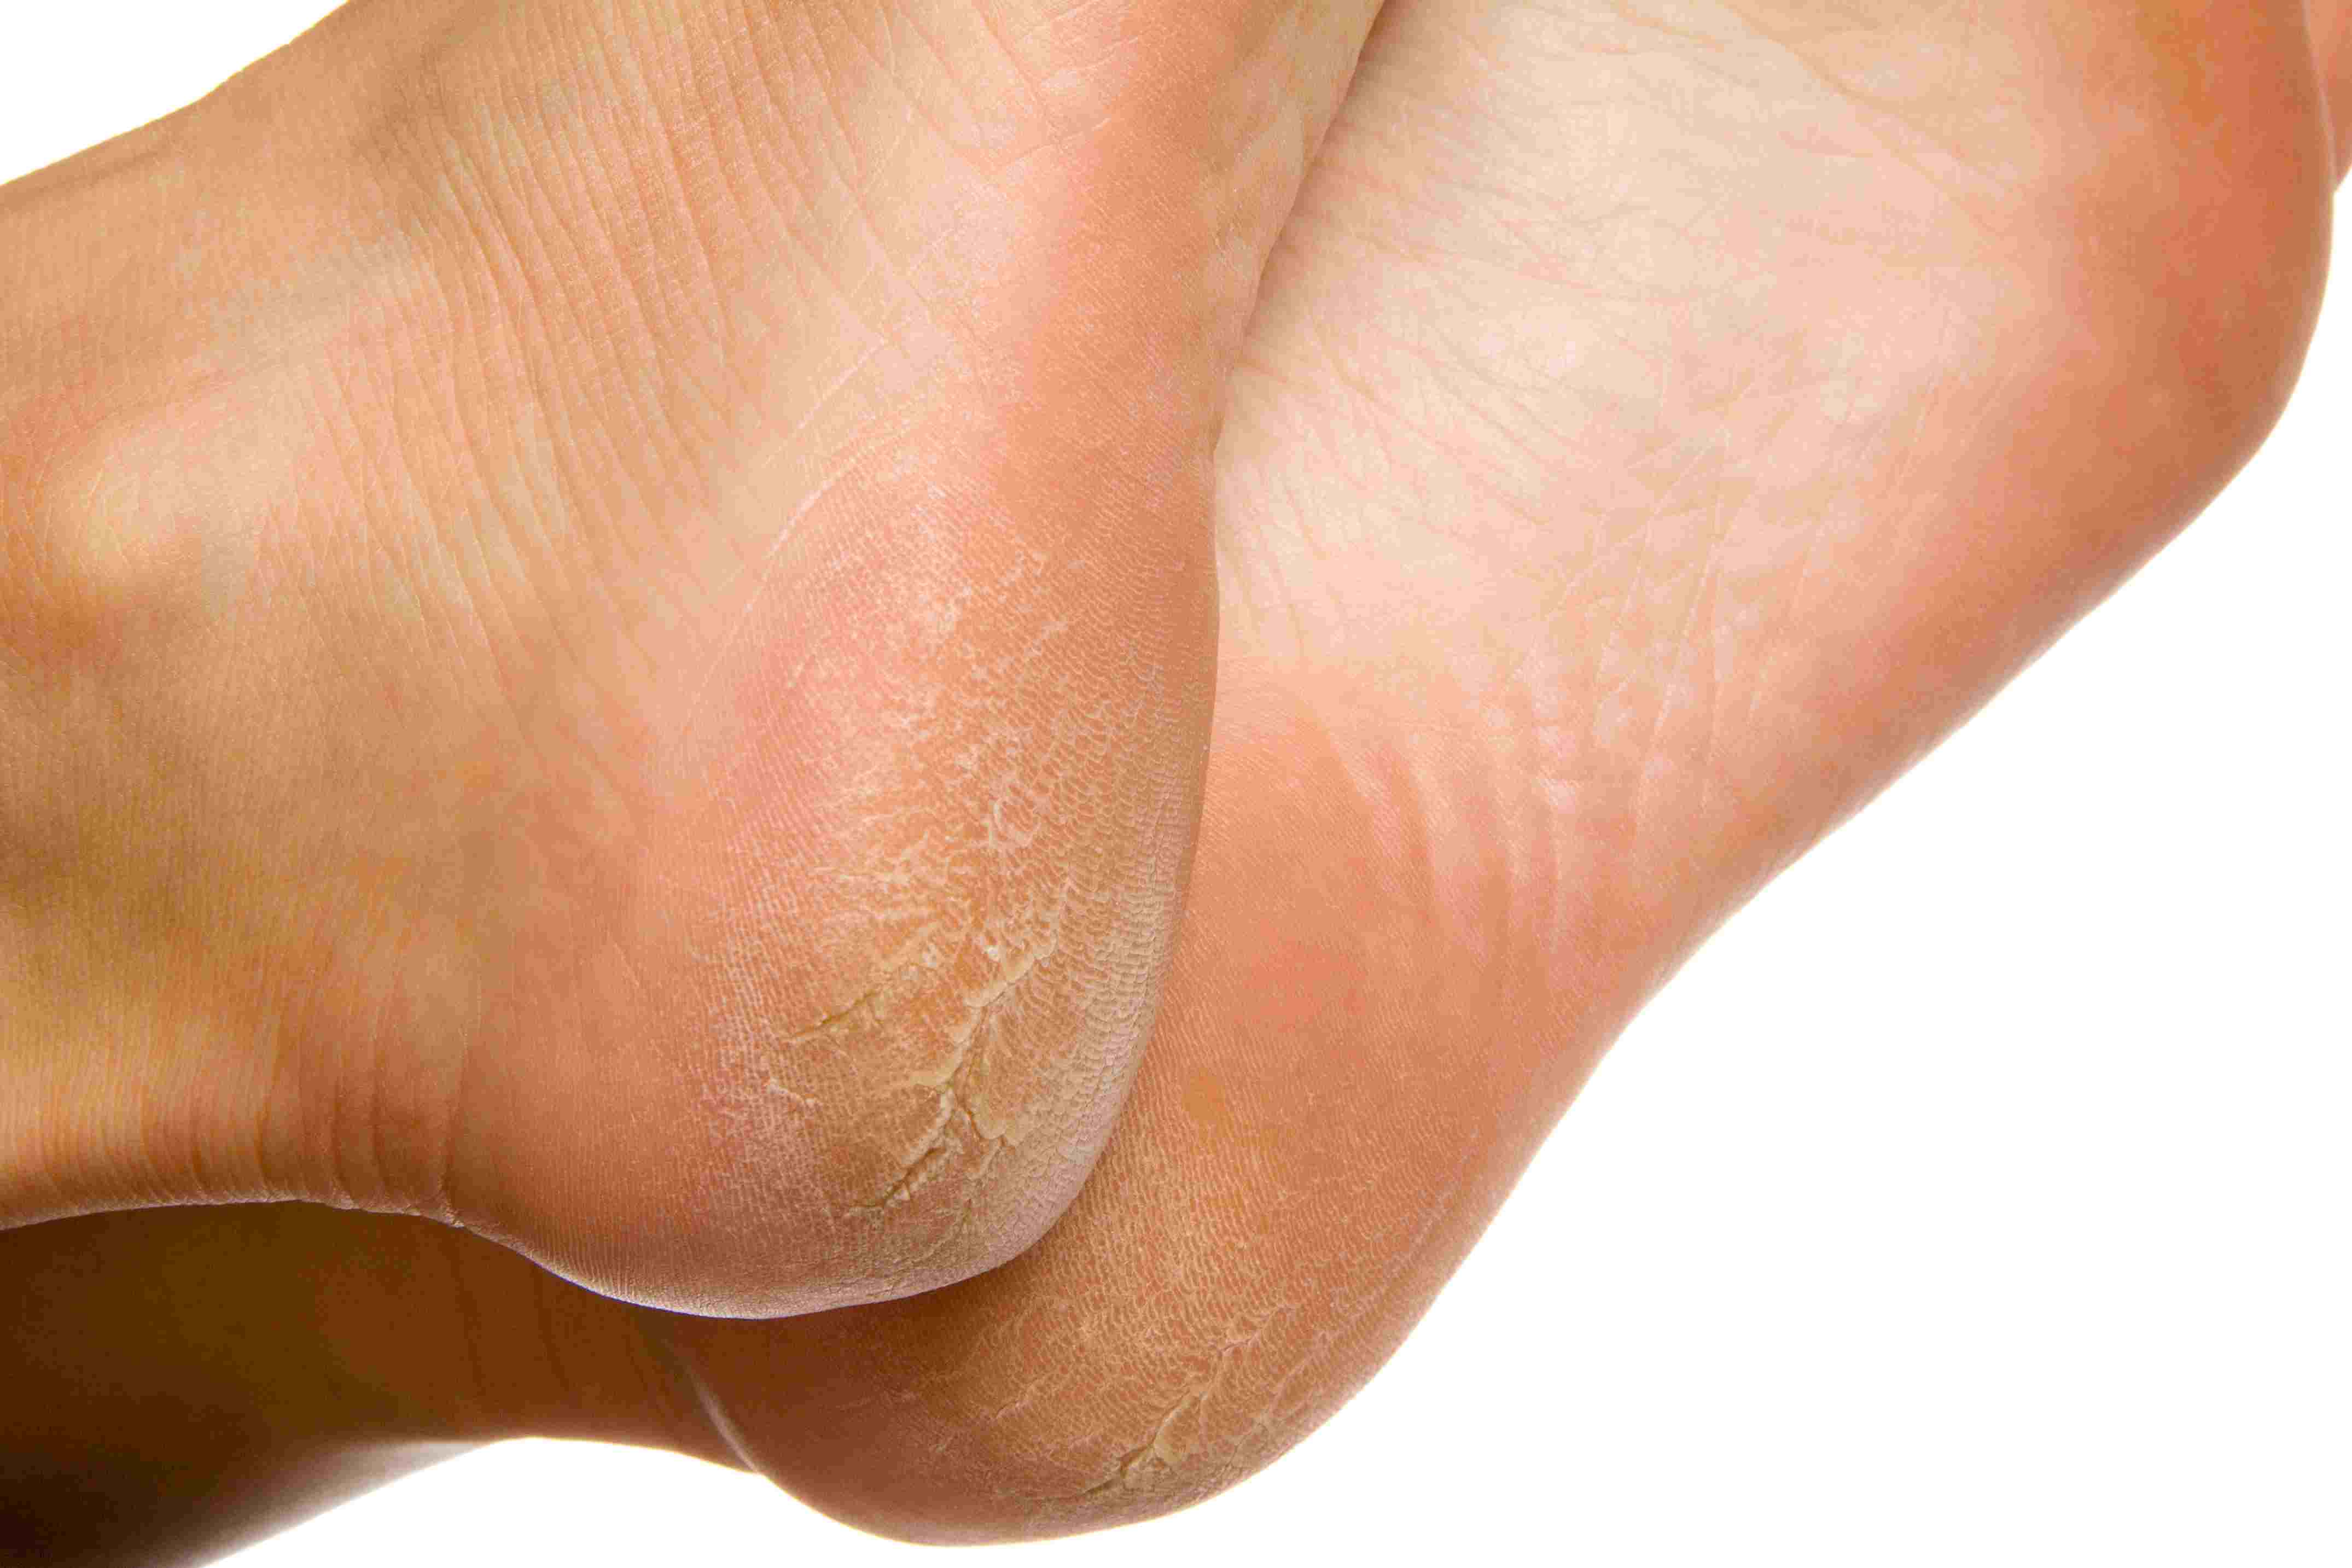 wart on foot with black center)